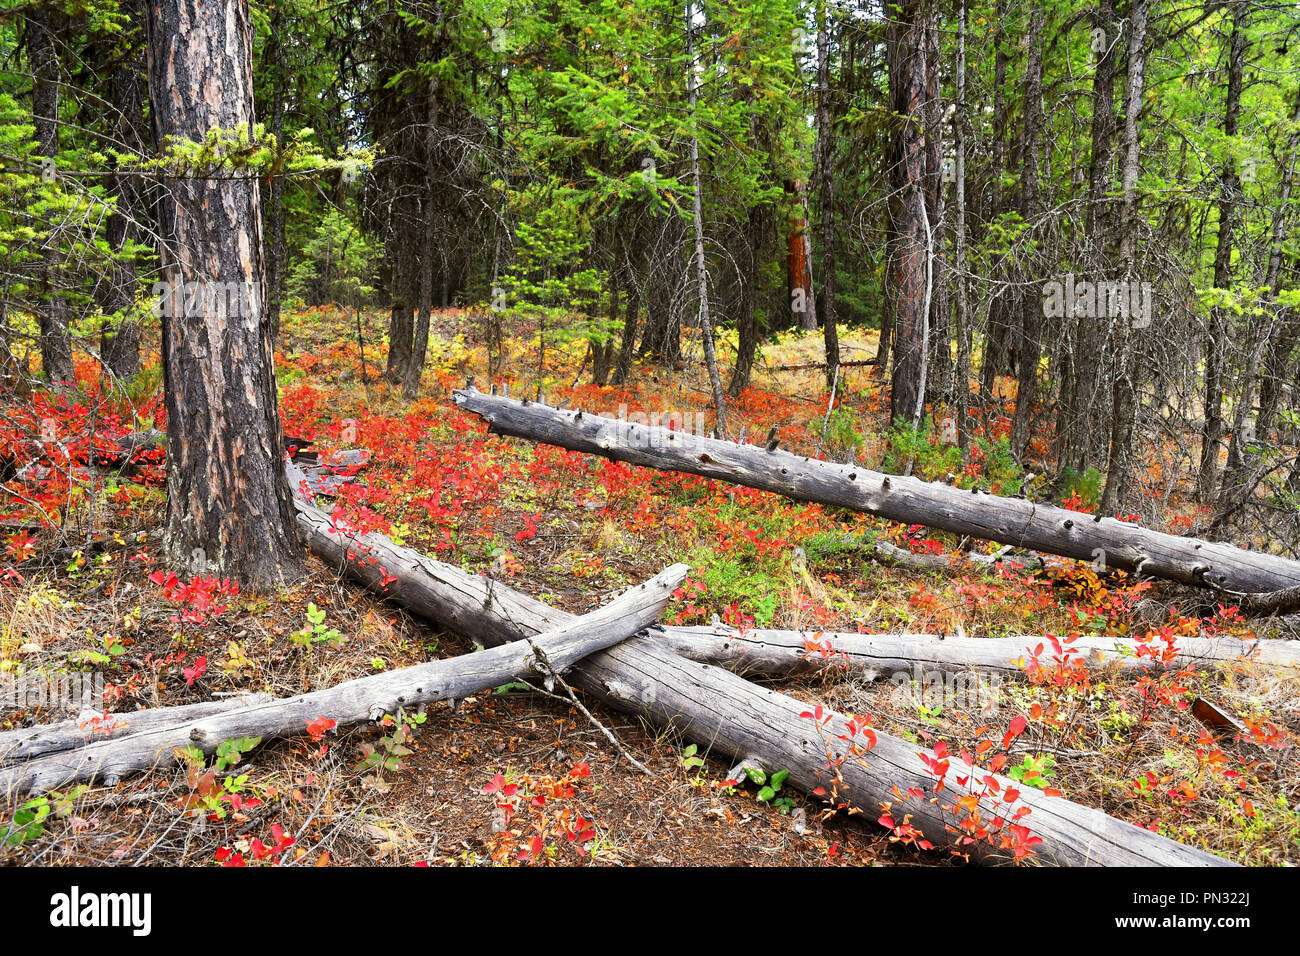 Autumn red leaves color the underbrush in a forest at Glacier National Park, Montana Stock Photo